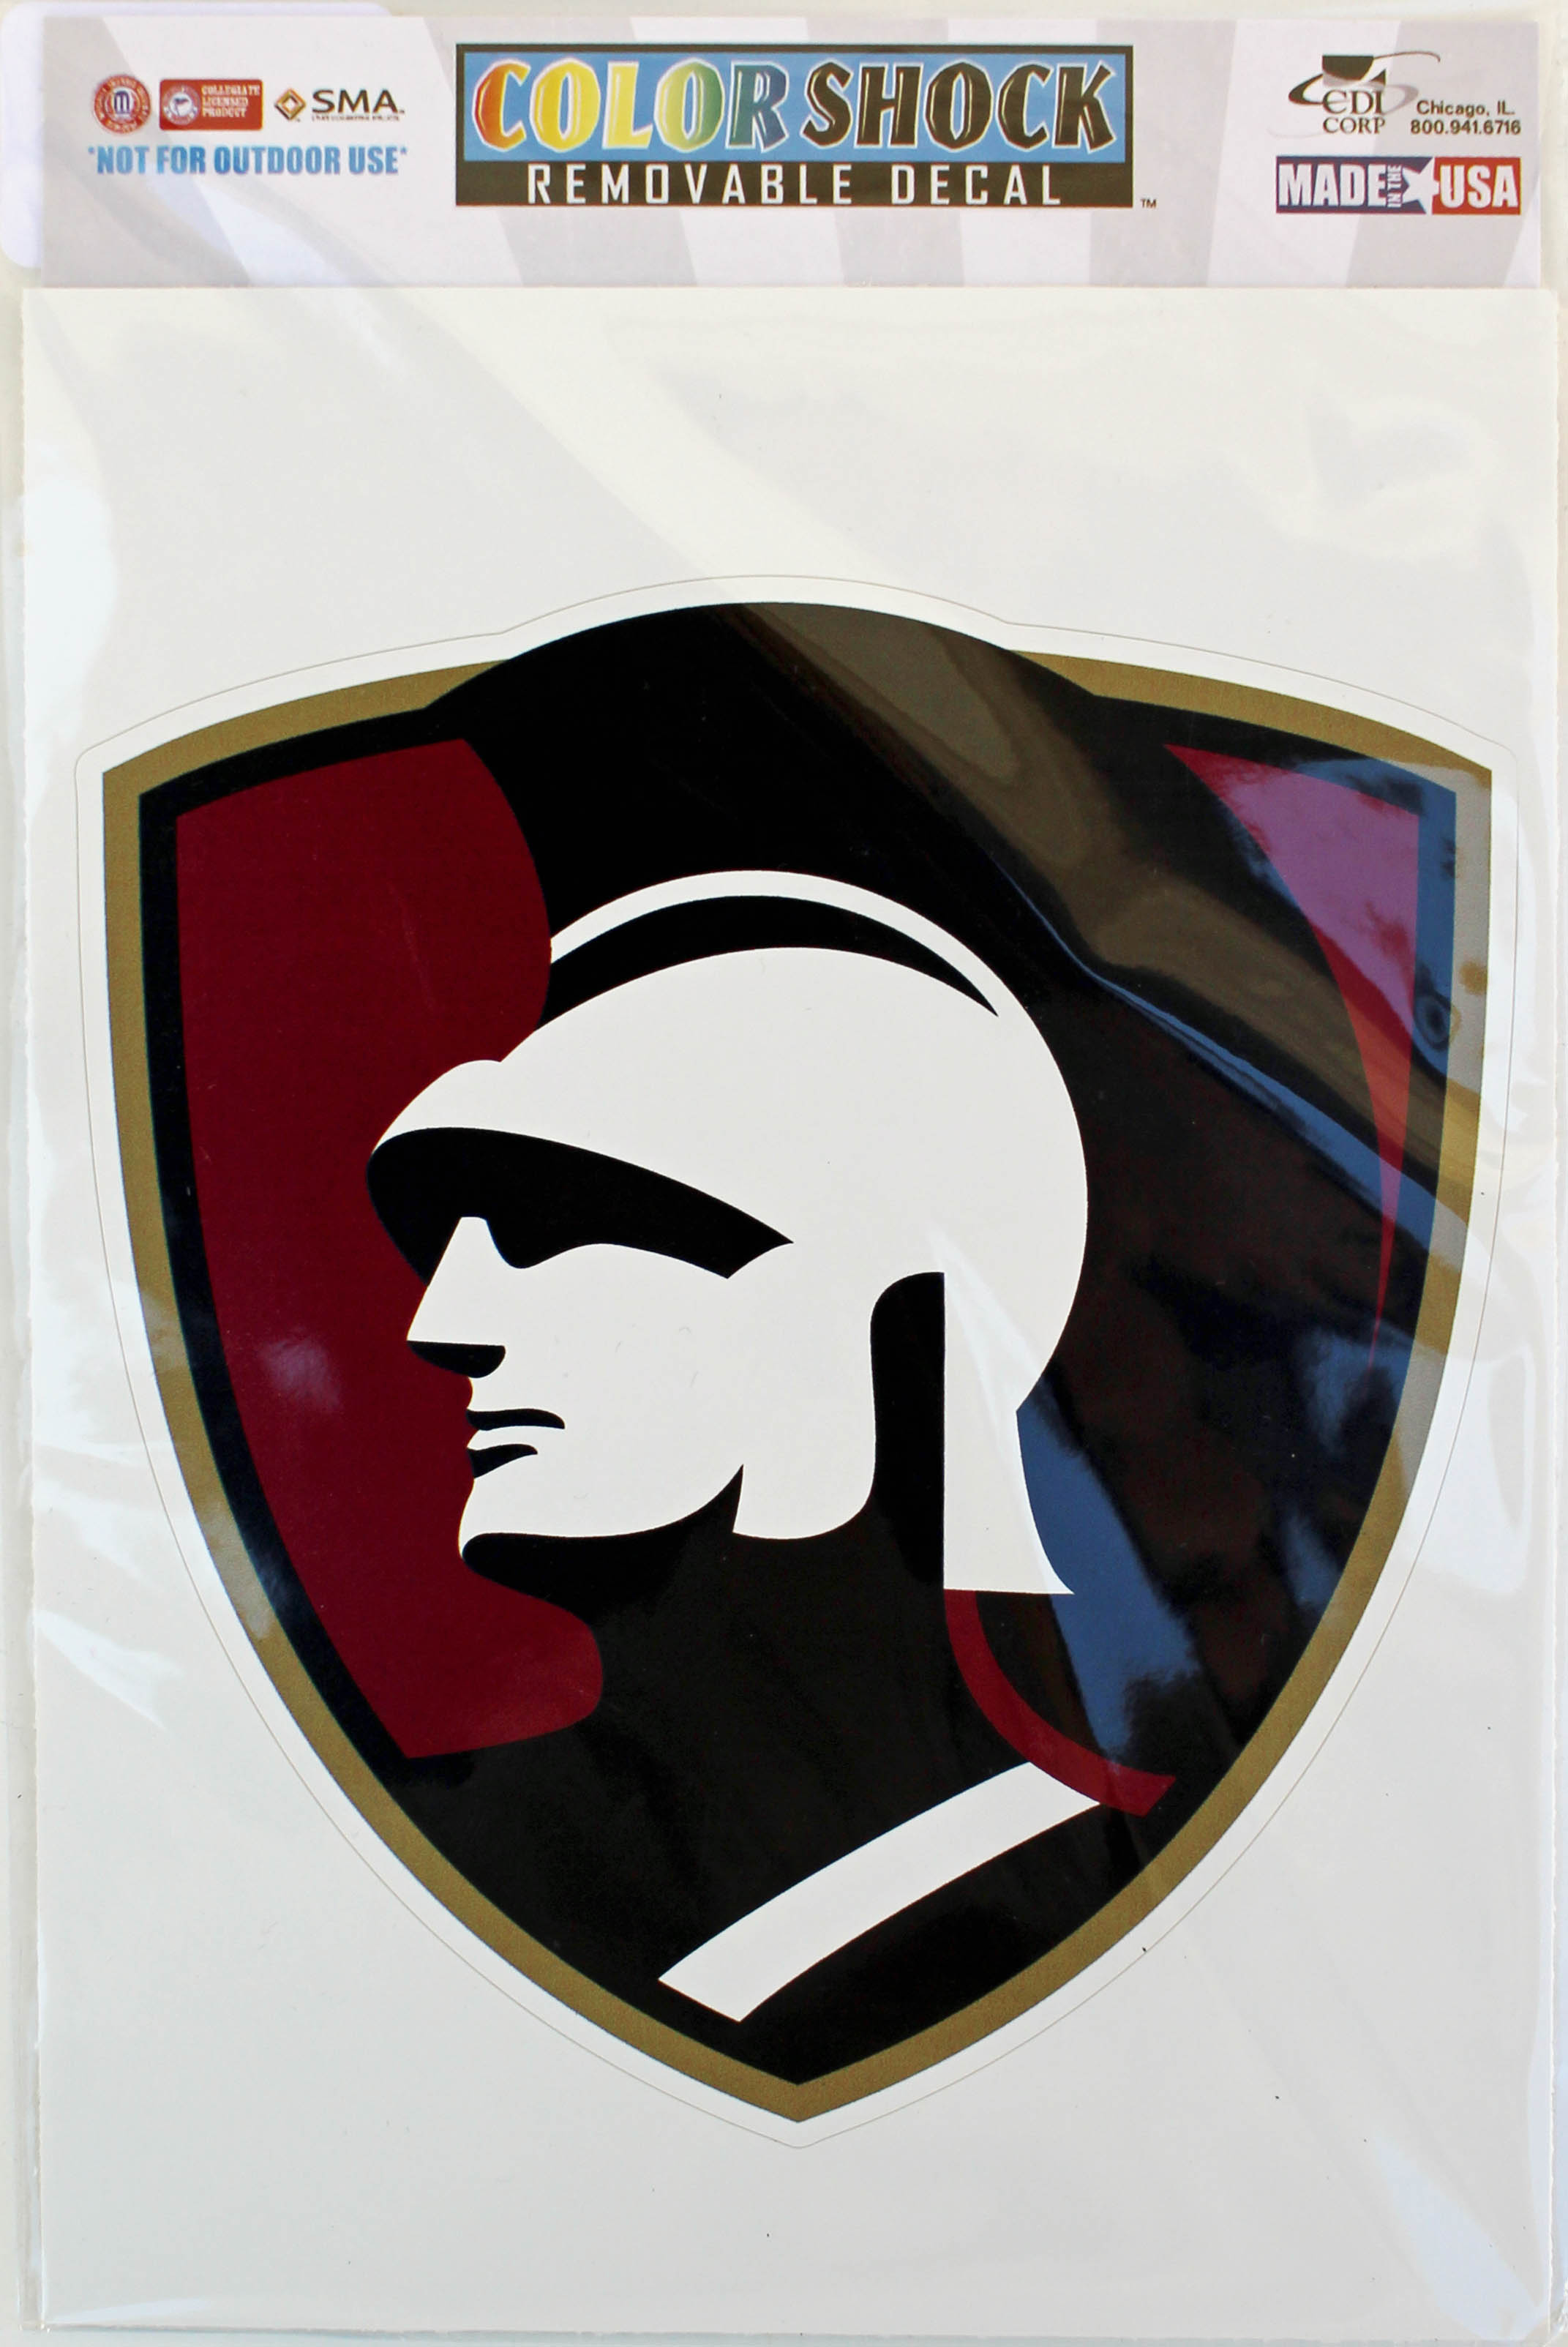 Image for the Warrior Head Removable Decal product